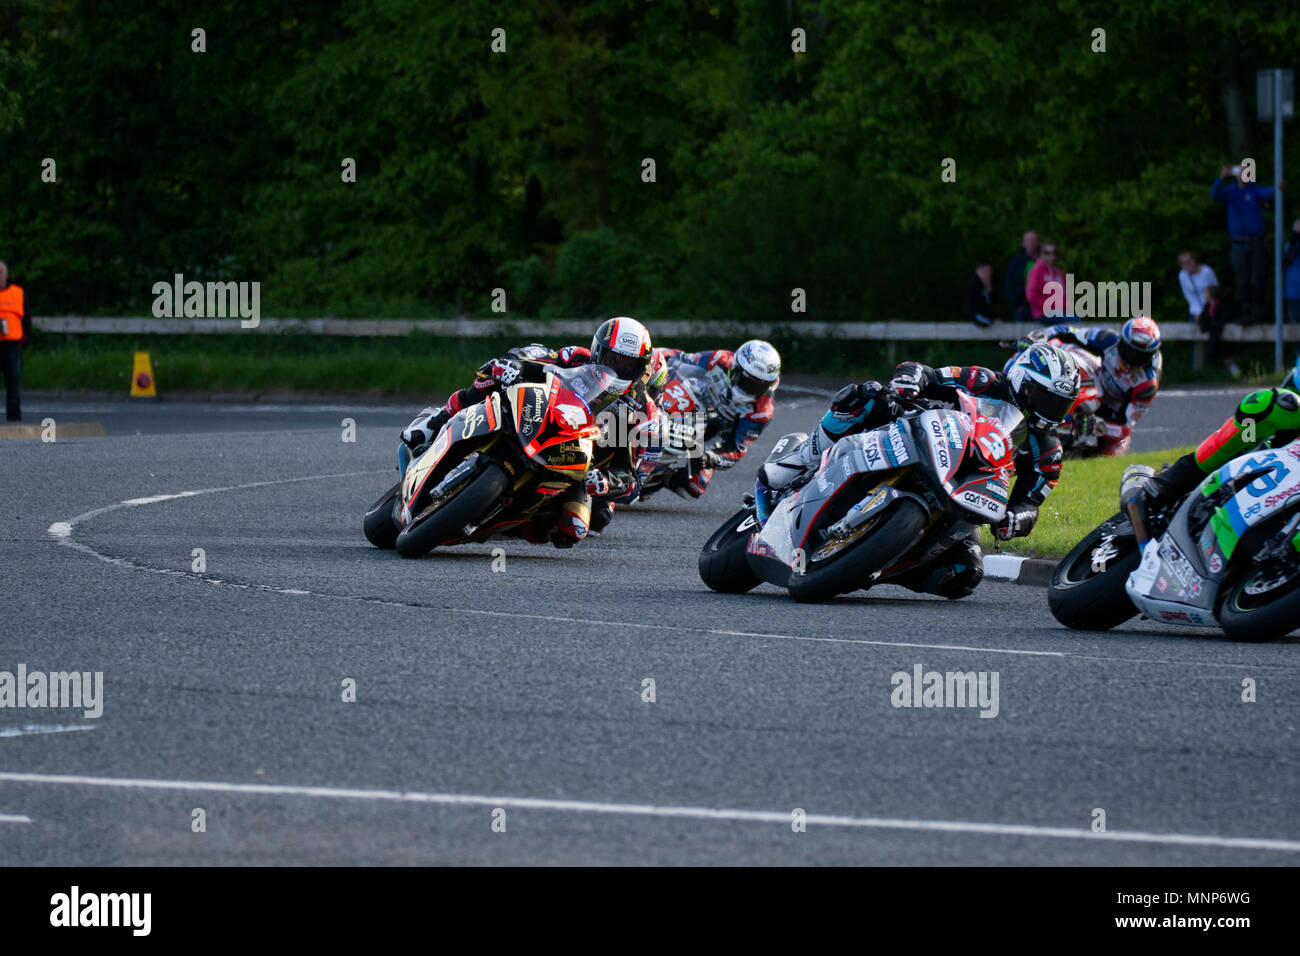 Ballysally Roundabout Coleraine Northern Ireland. 17th May 2018. NW 200 Bayview Superstock Race. Som,e of the action at the Ballysally Roundabout Credit: Brian Wilkinson/Alamy Live News - Stock Image